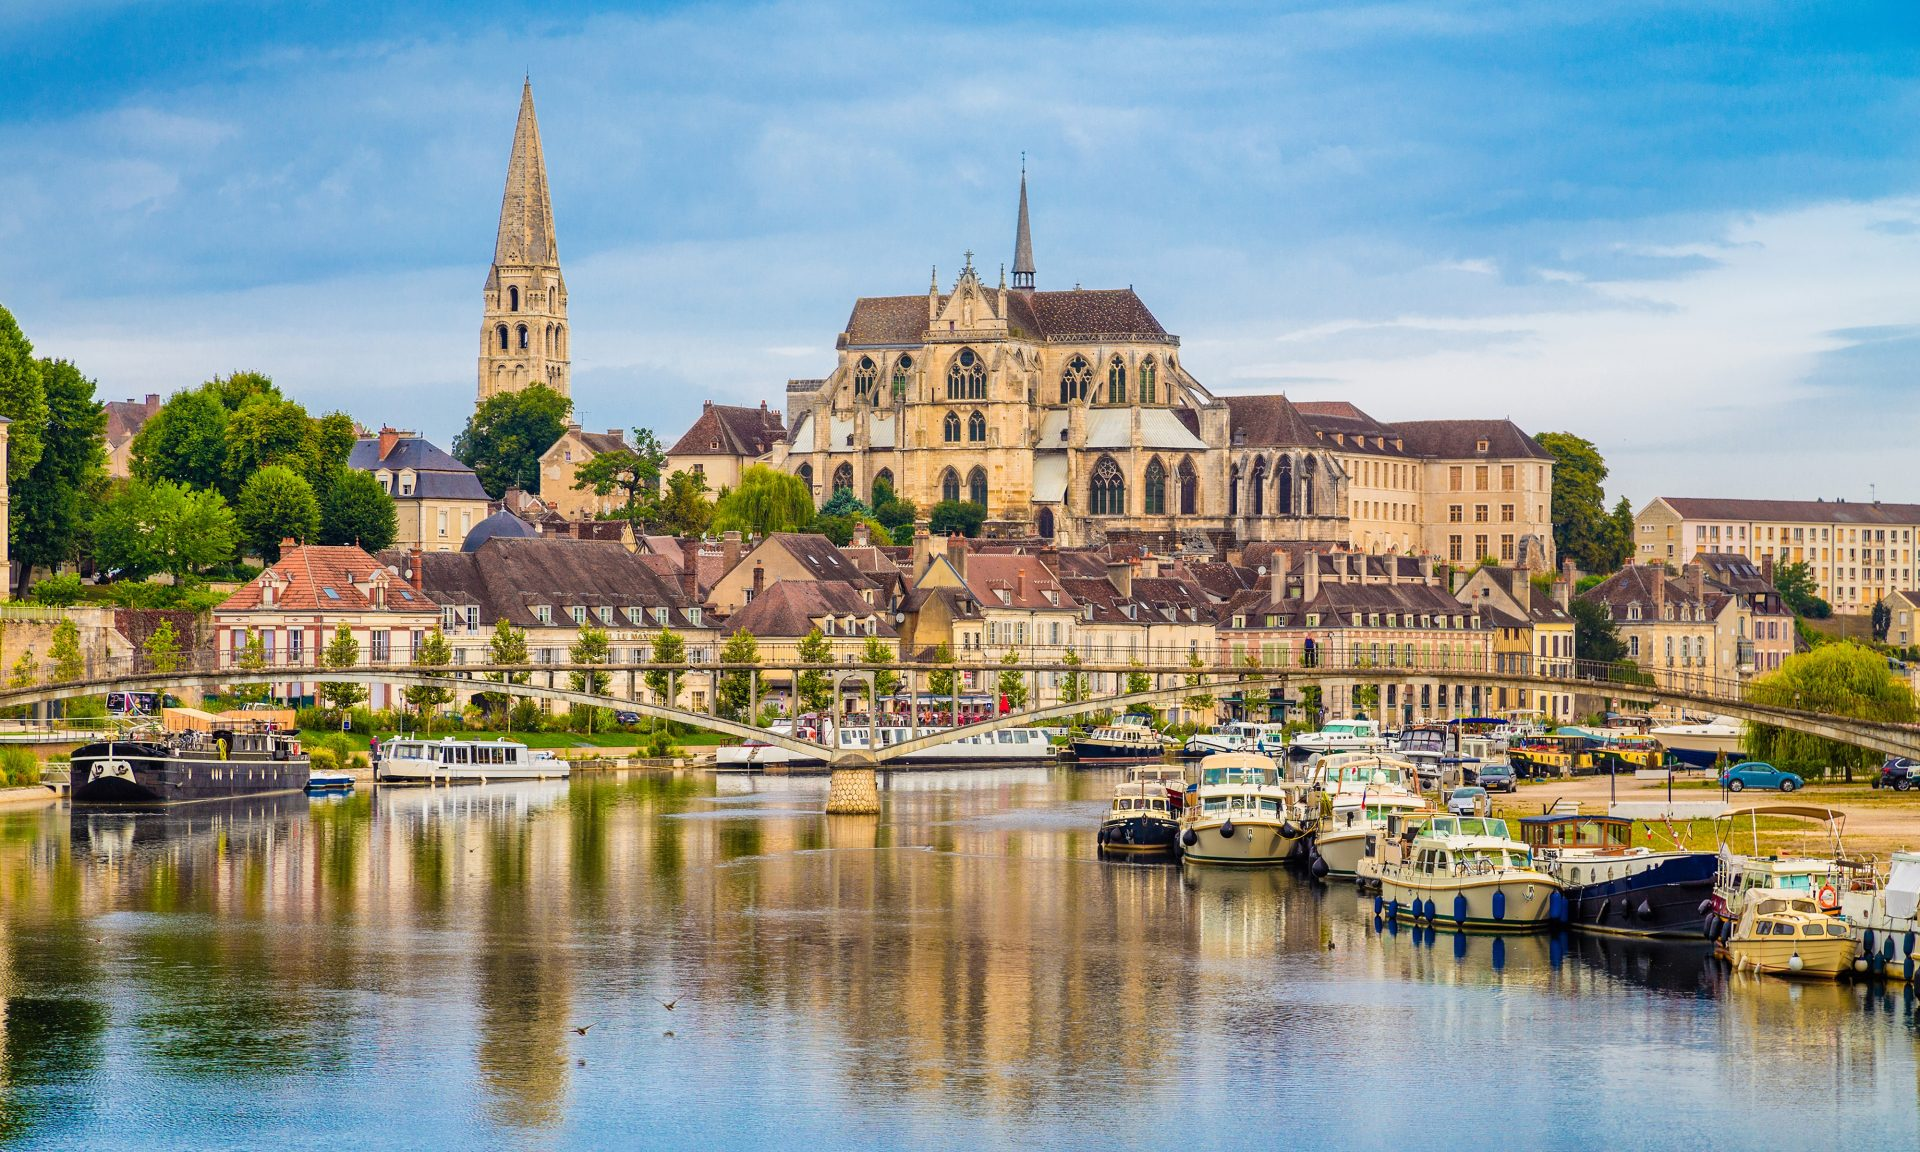 What are some of the most popular things to buy in france?